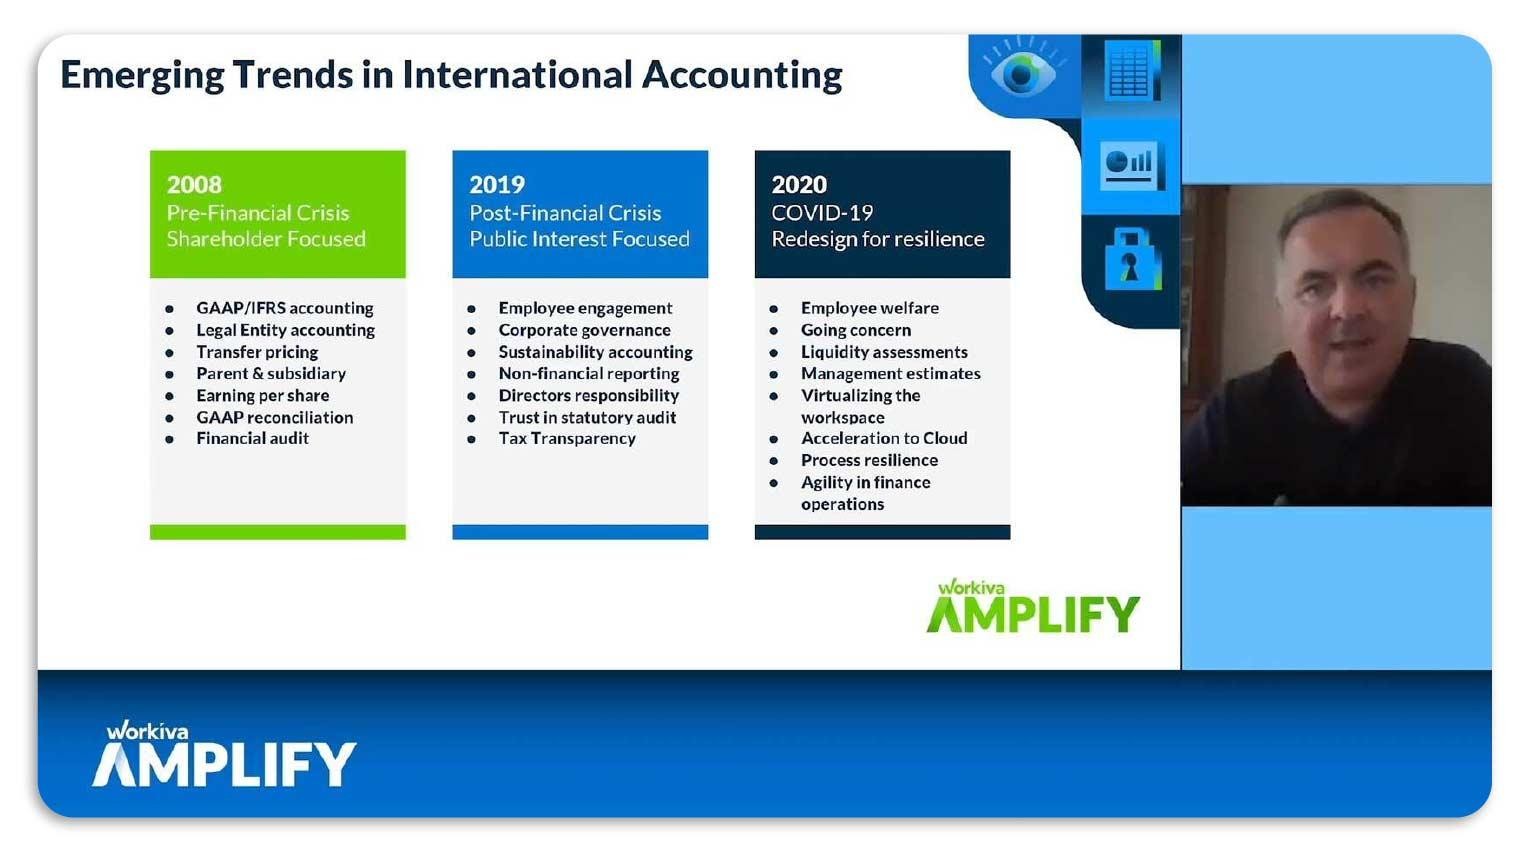 List of emerging trends in international accounting